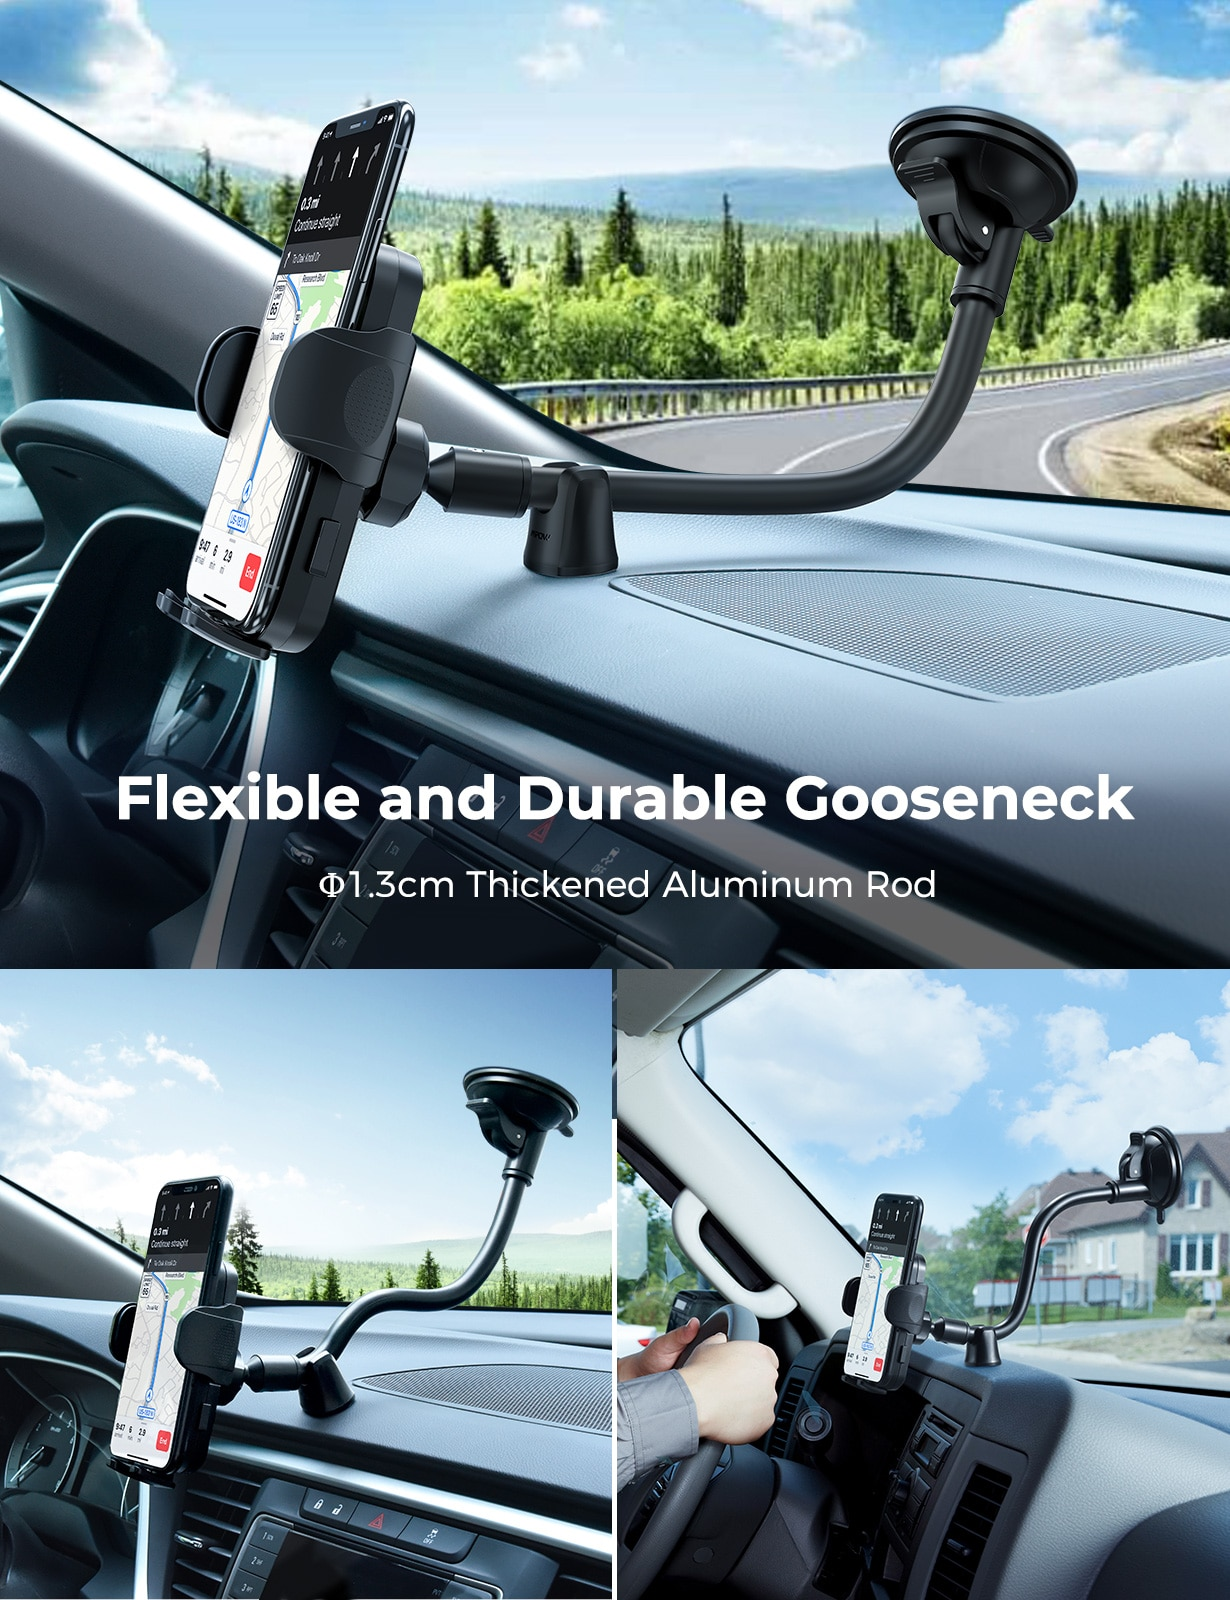 H03bc85b6dbaf4672bef59c339f59e3014 - MPOW CA159 Upgraded Long Gooseneck Phone Holder for Car Windshield Car Phone Mount for iPhone SE 11 Pro Galaxy Note and More